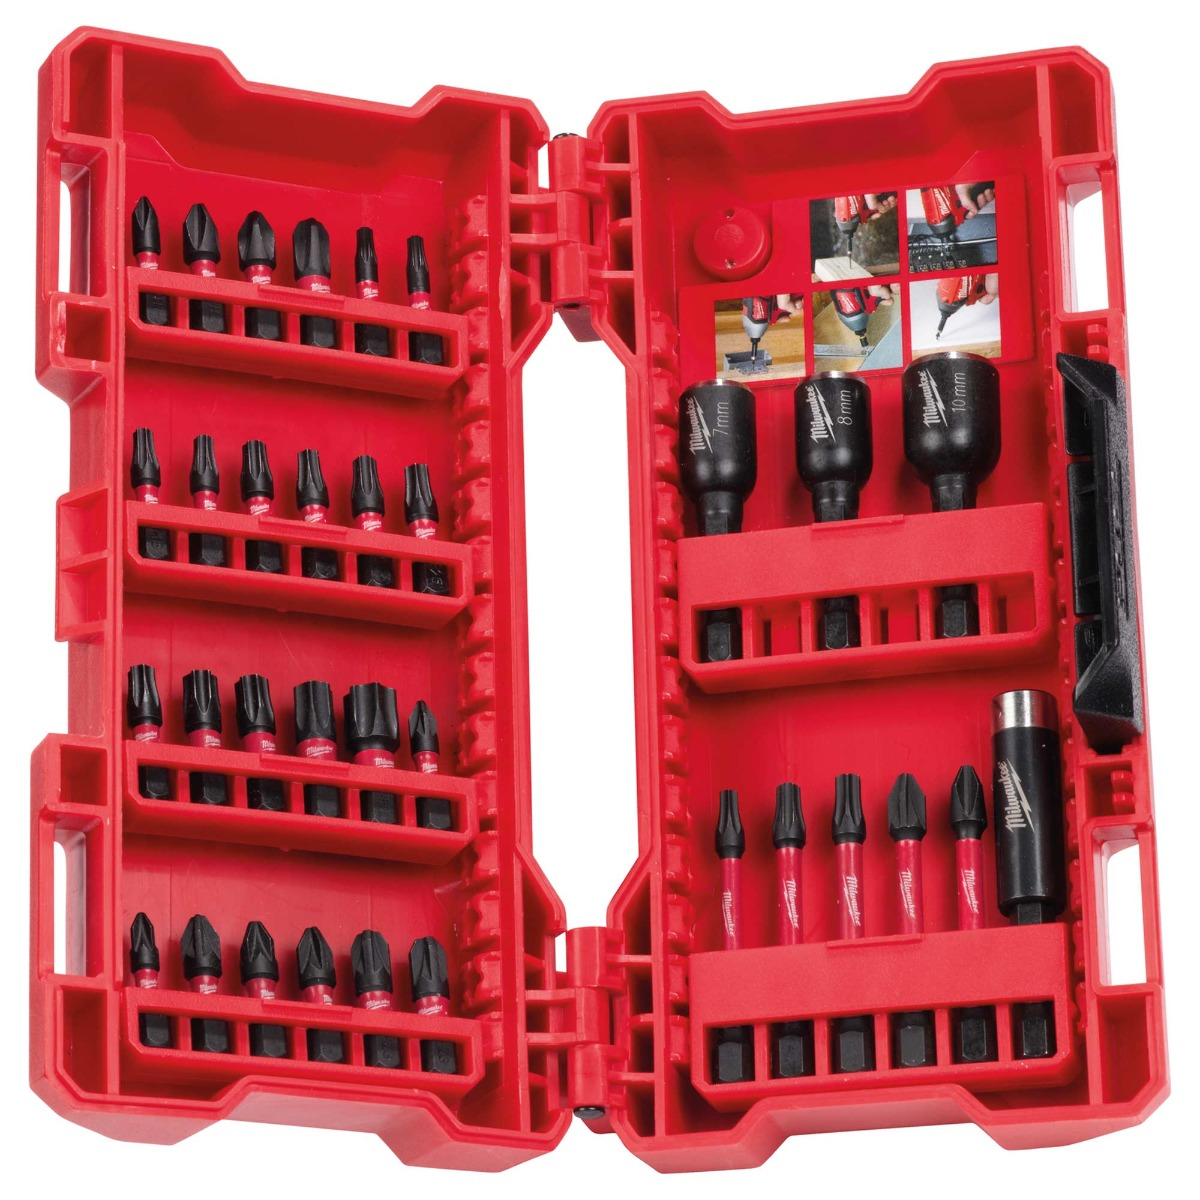 4932430905 33 pce Shockwave Impact Bits and Nut Drivers Set